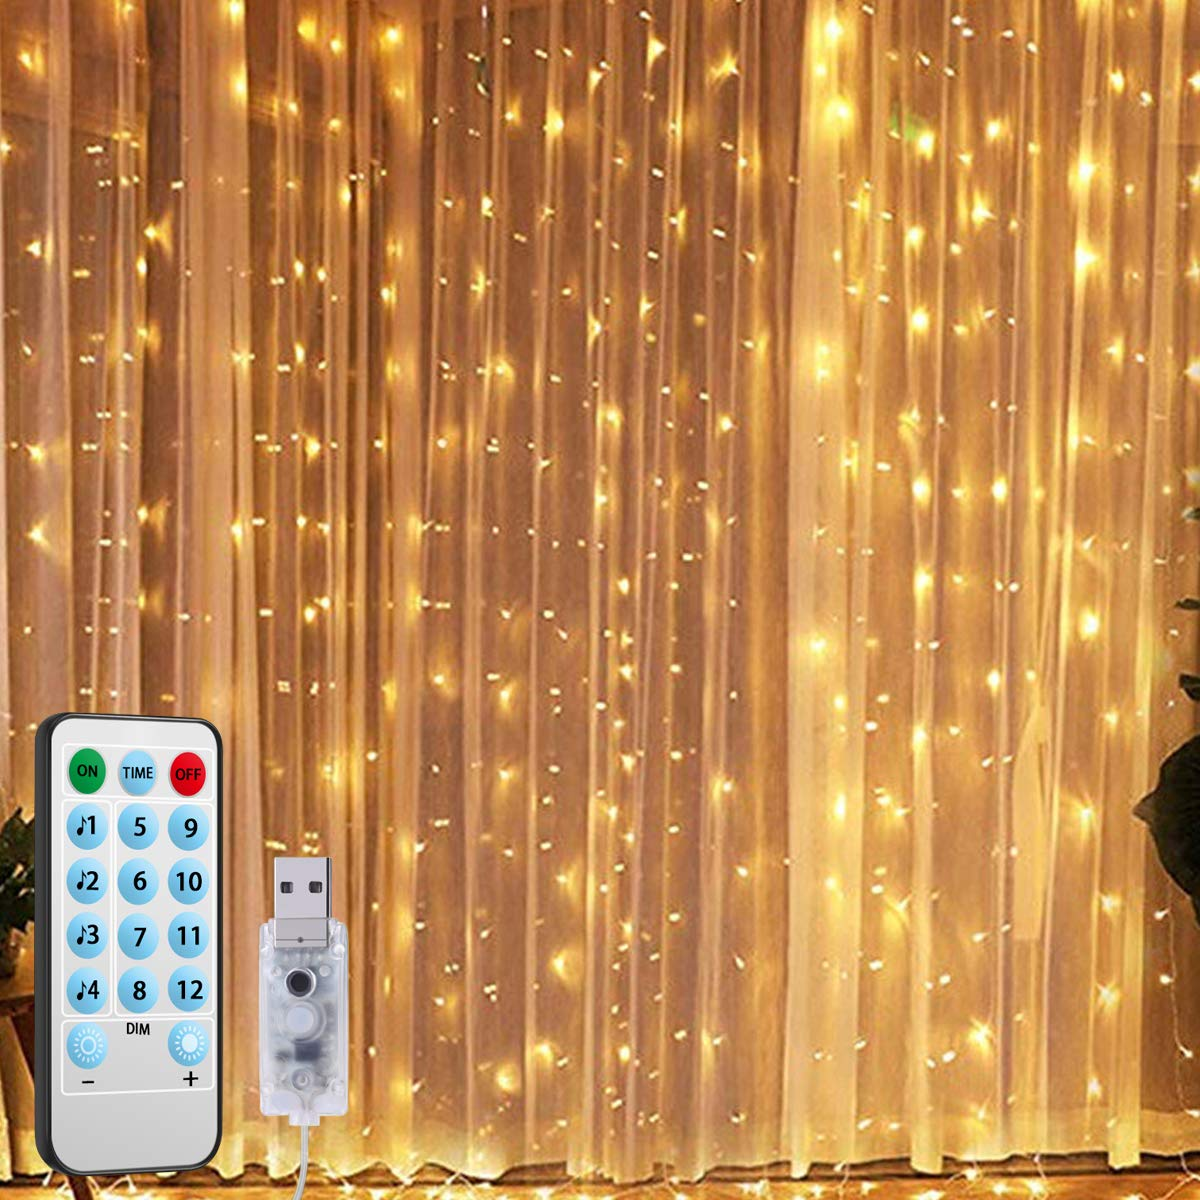 2019 New Window Curtain String Lights, 300 LED USB Powered String Lights, 4 Music Control Modes 8 Lighting Modes Waterproof Decorative Lights for Wedding, Homes, Party, Bedroom (9.8x9.8 Ft)